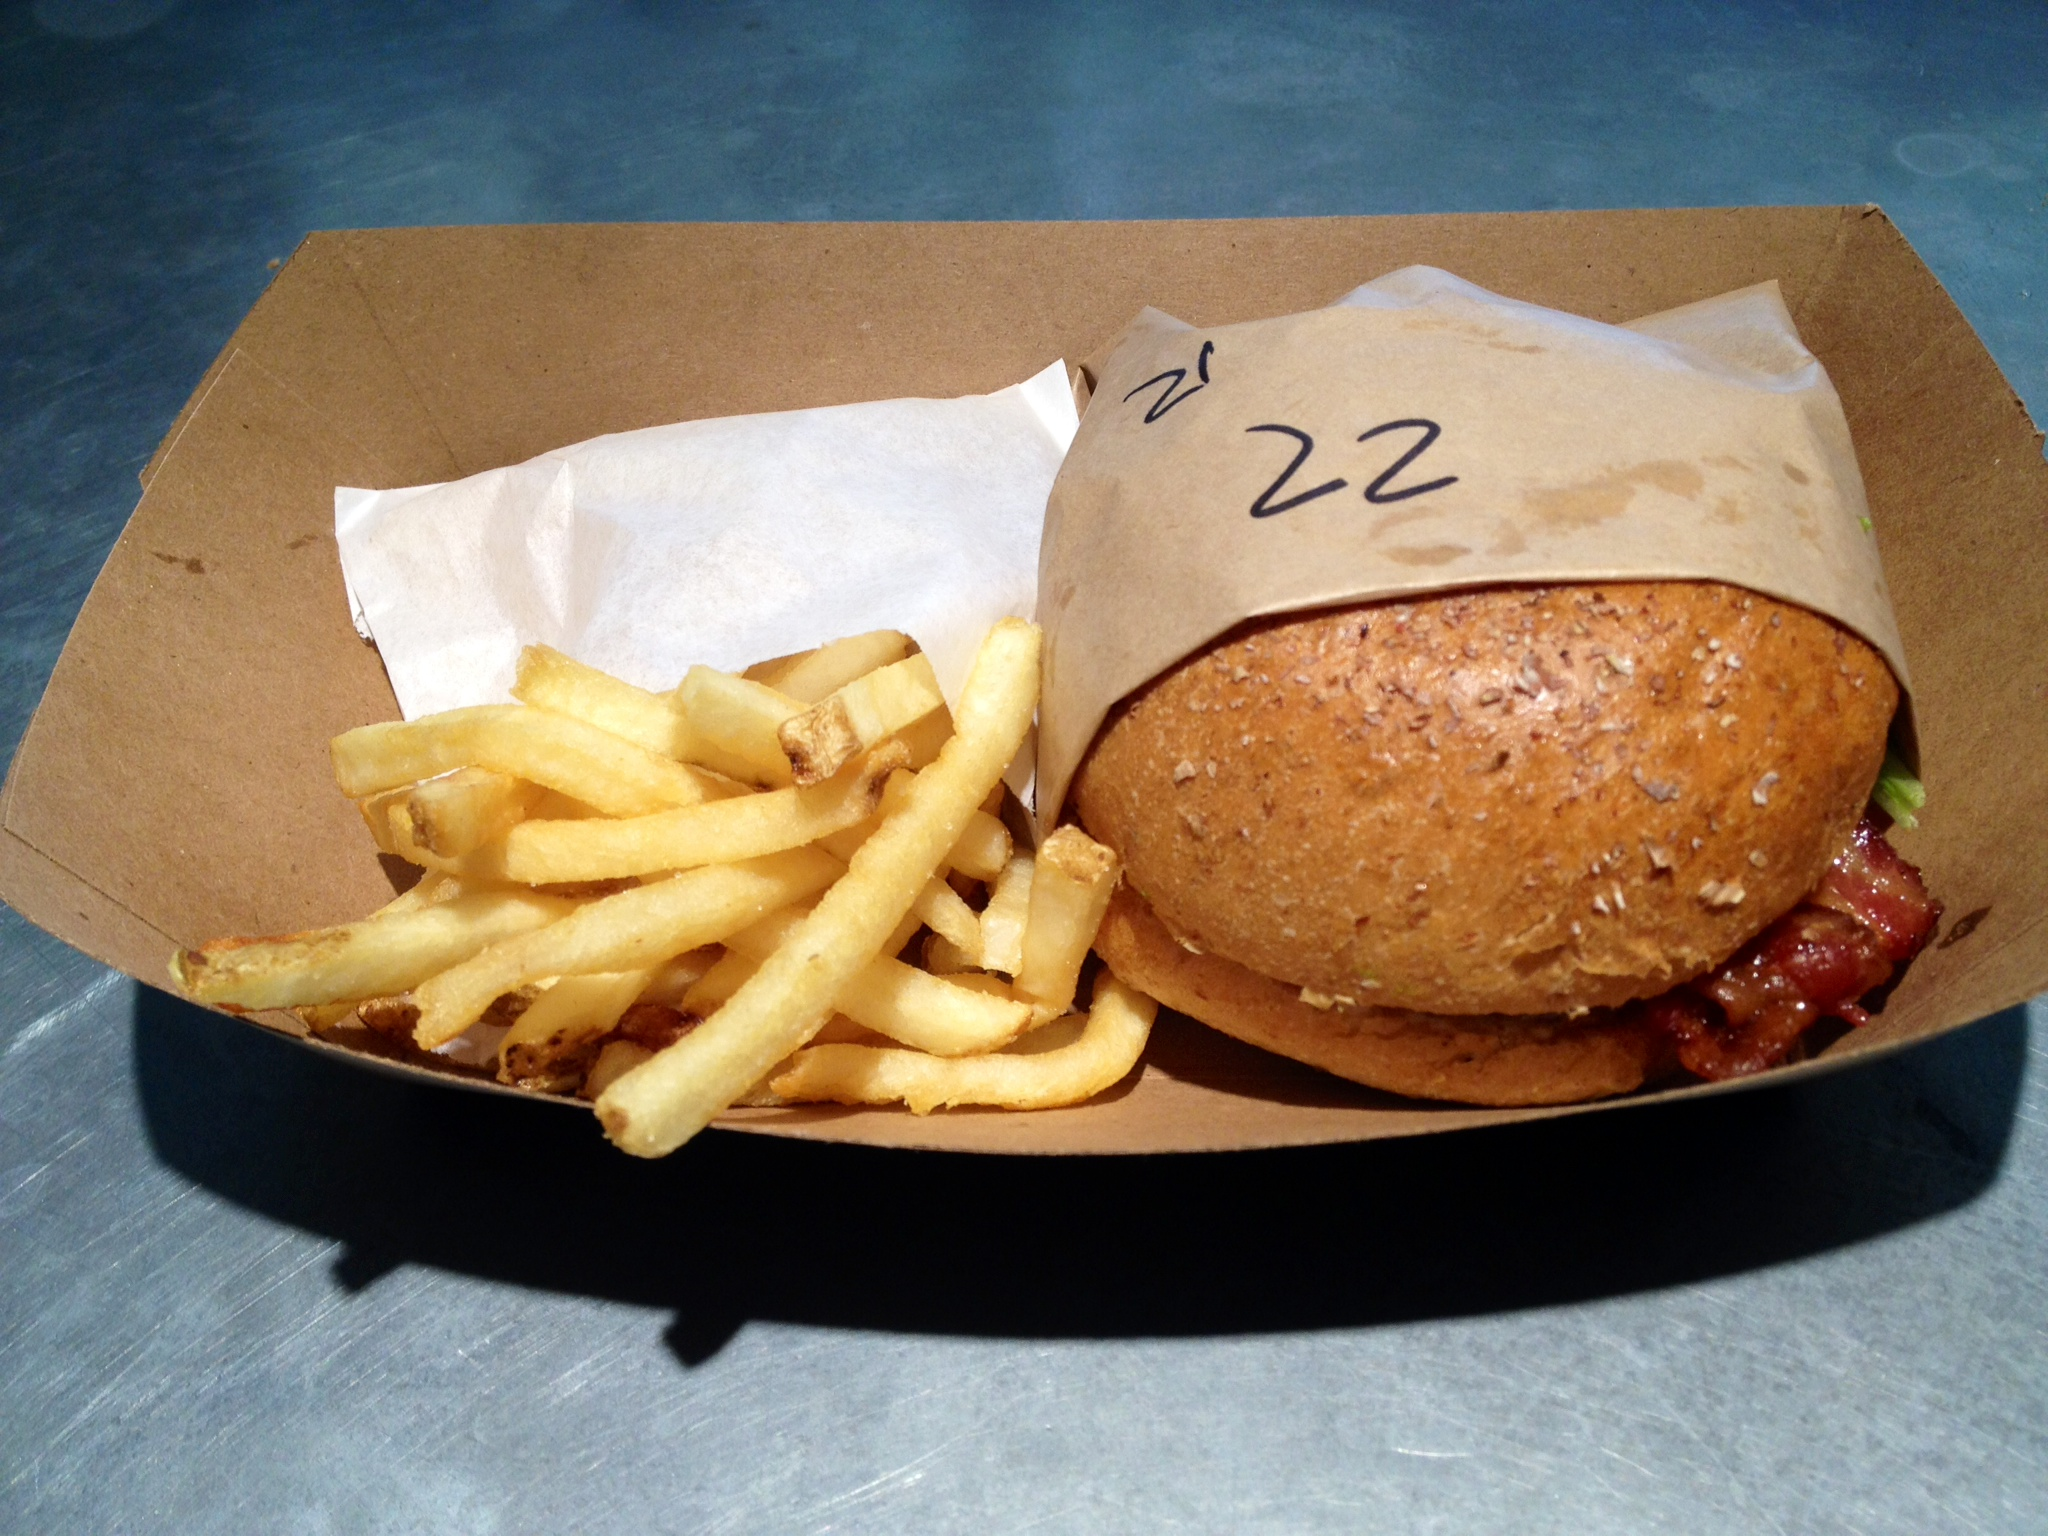 Brgr and Fries